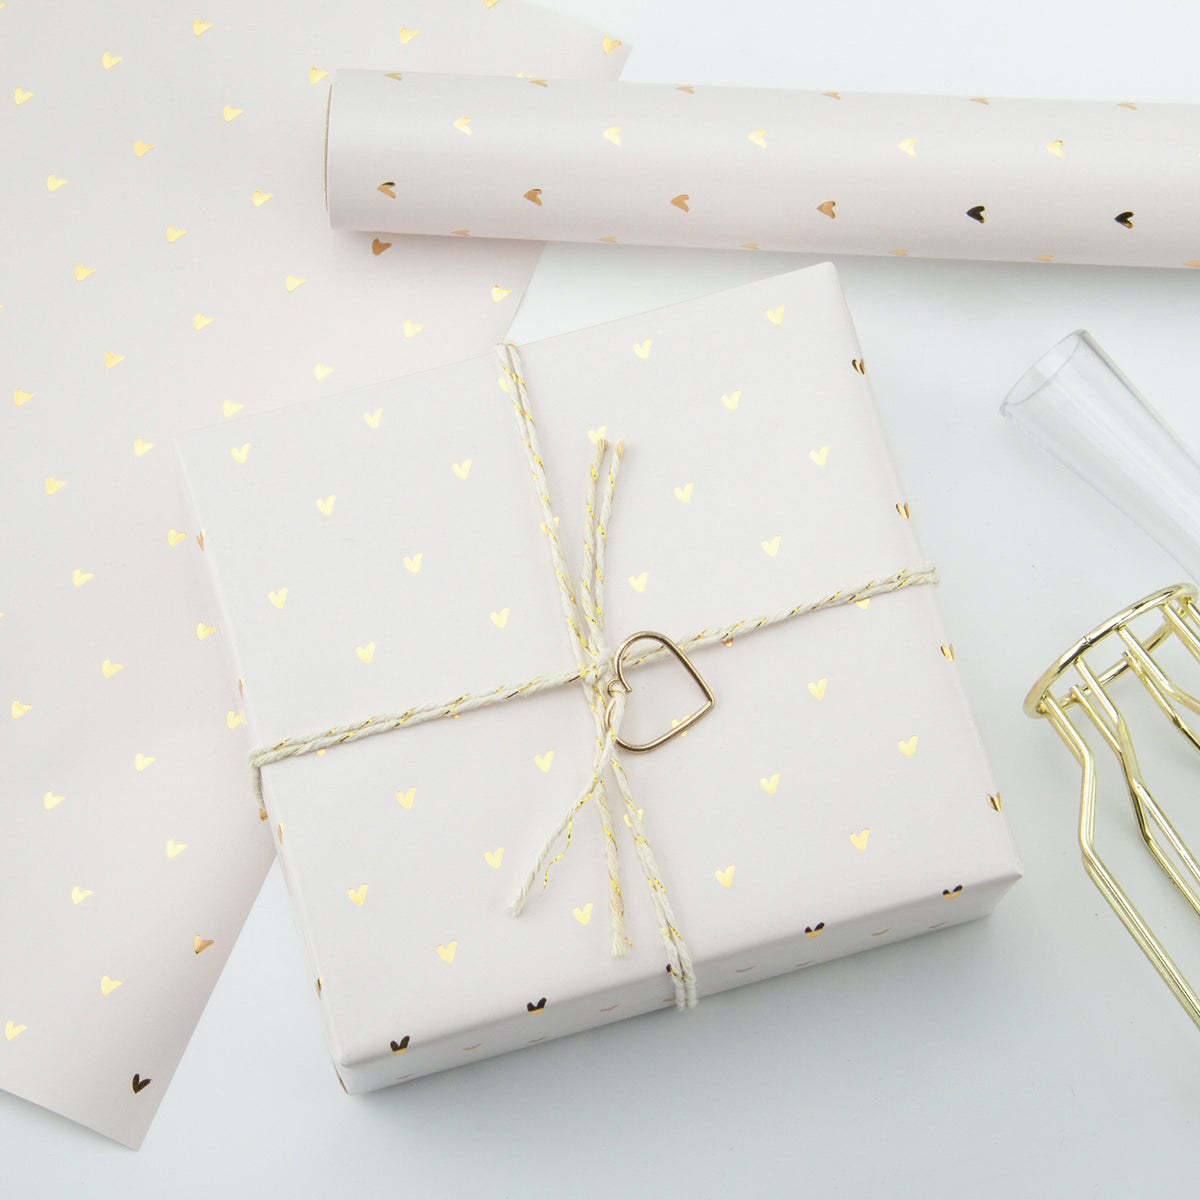 Wrapaholic-Pastel-Pink-Color-with-Gold-Foil-Sweet-Heart- Design-Gift-Wrapping-Paper-Roll-5